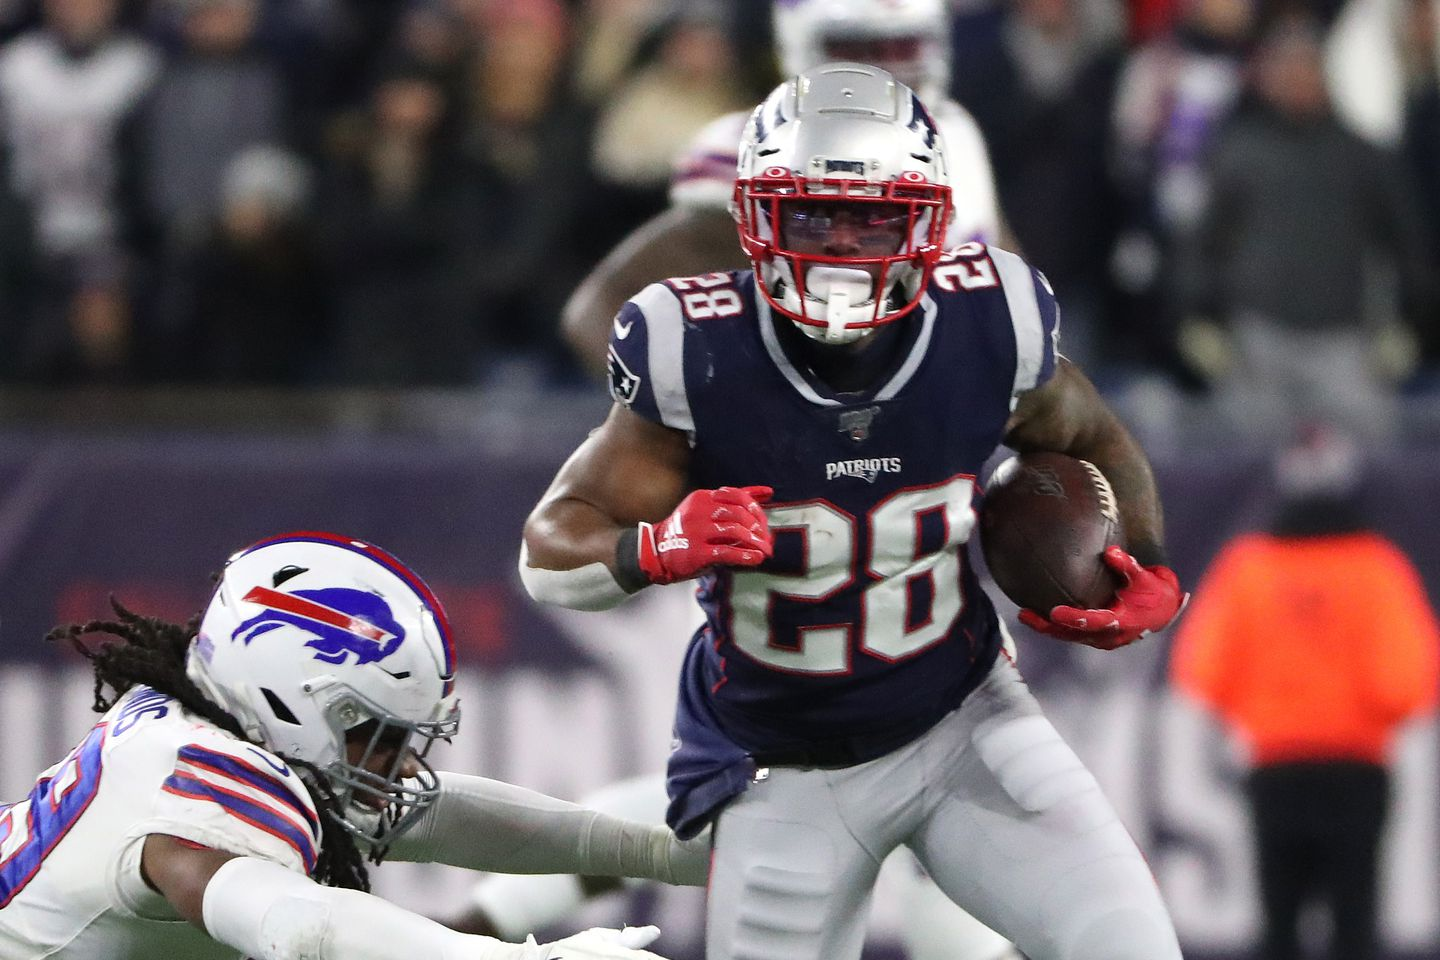 Patriots Place Running Back Sony Michel On Injured Reserve Activate Damien Harris Ahead Of Chiefs Game The Boston Globe